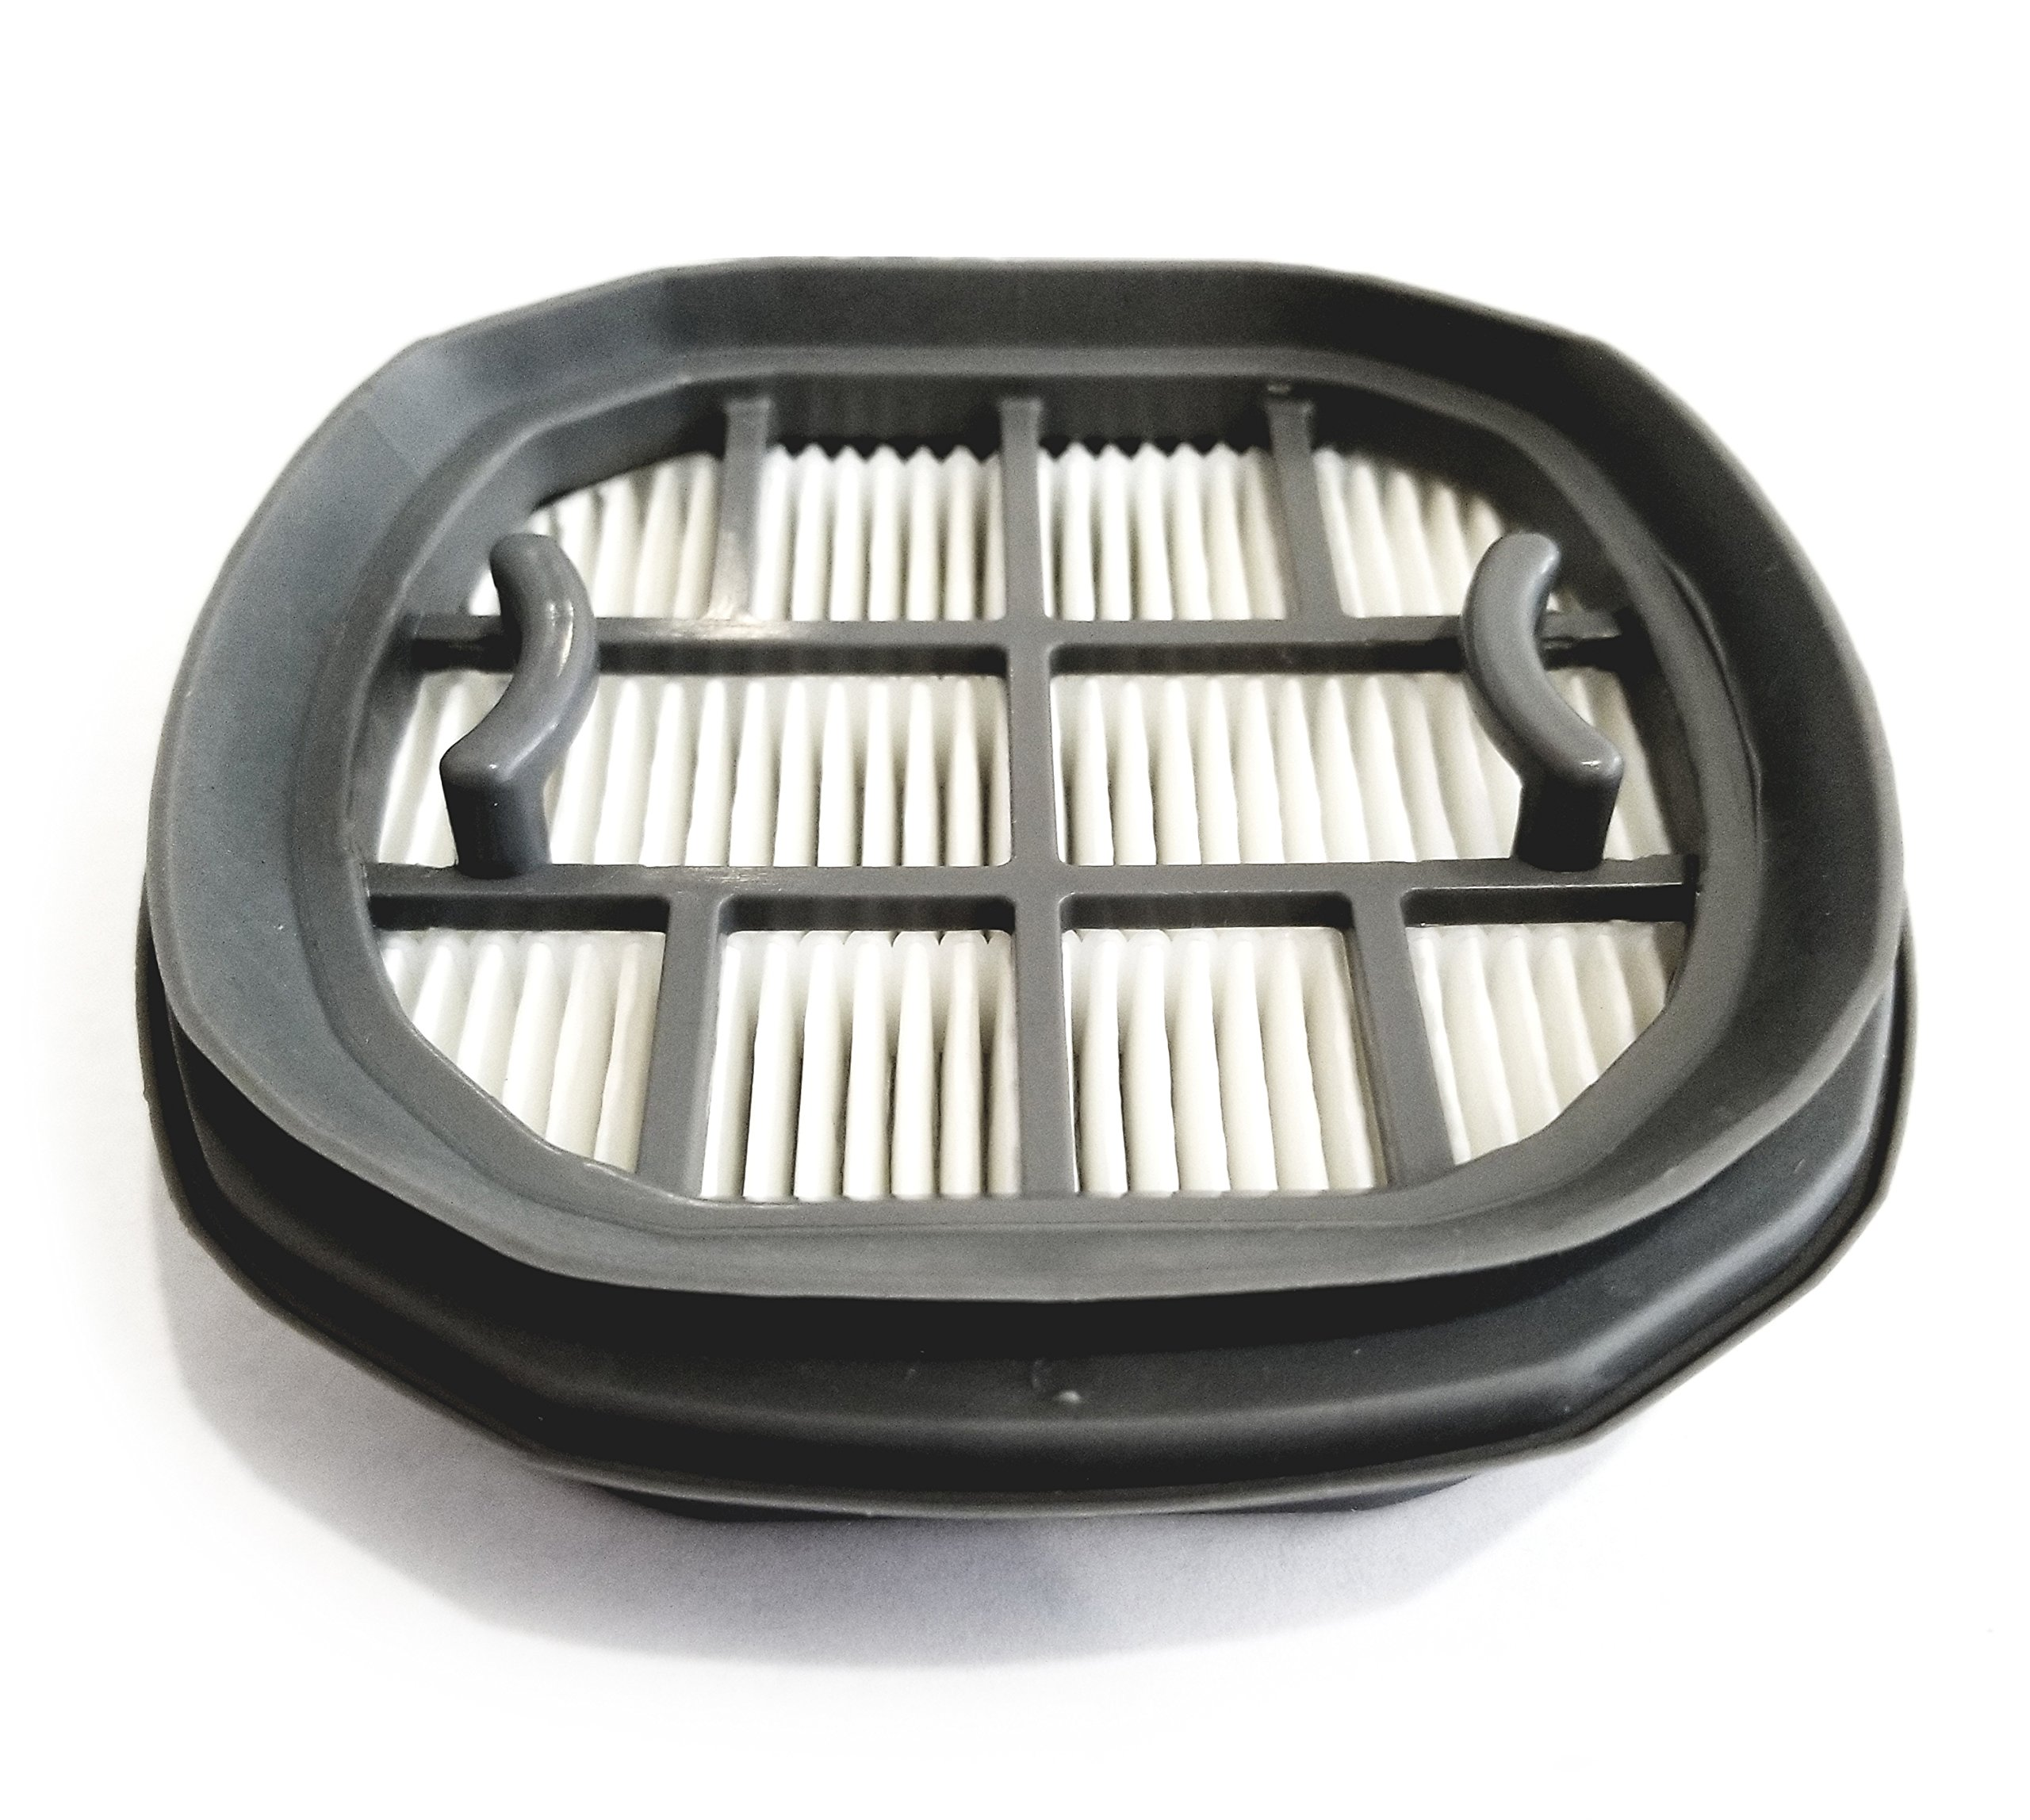 Prolux New Ion Stickvac HEPA Filter by Prolux